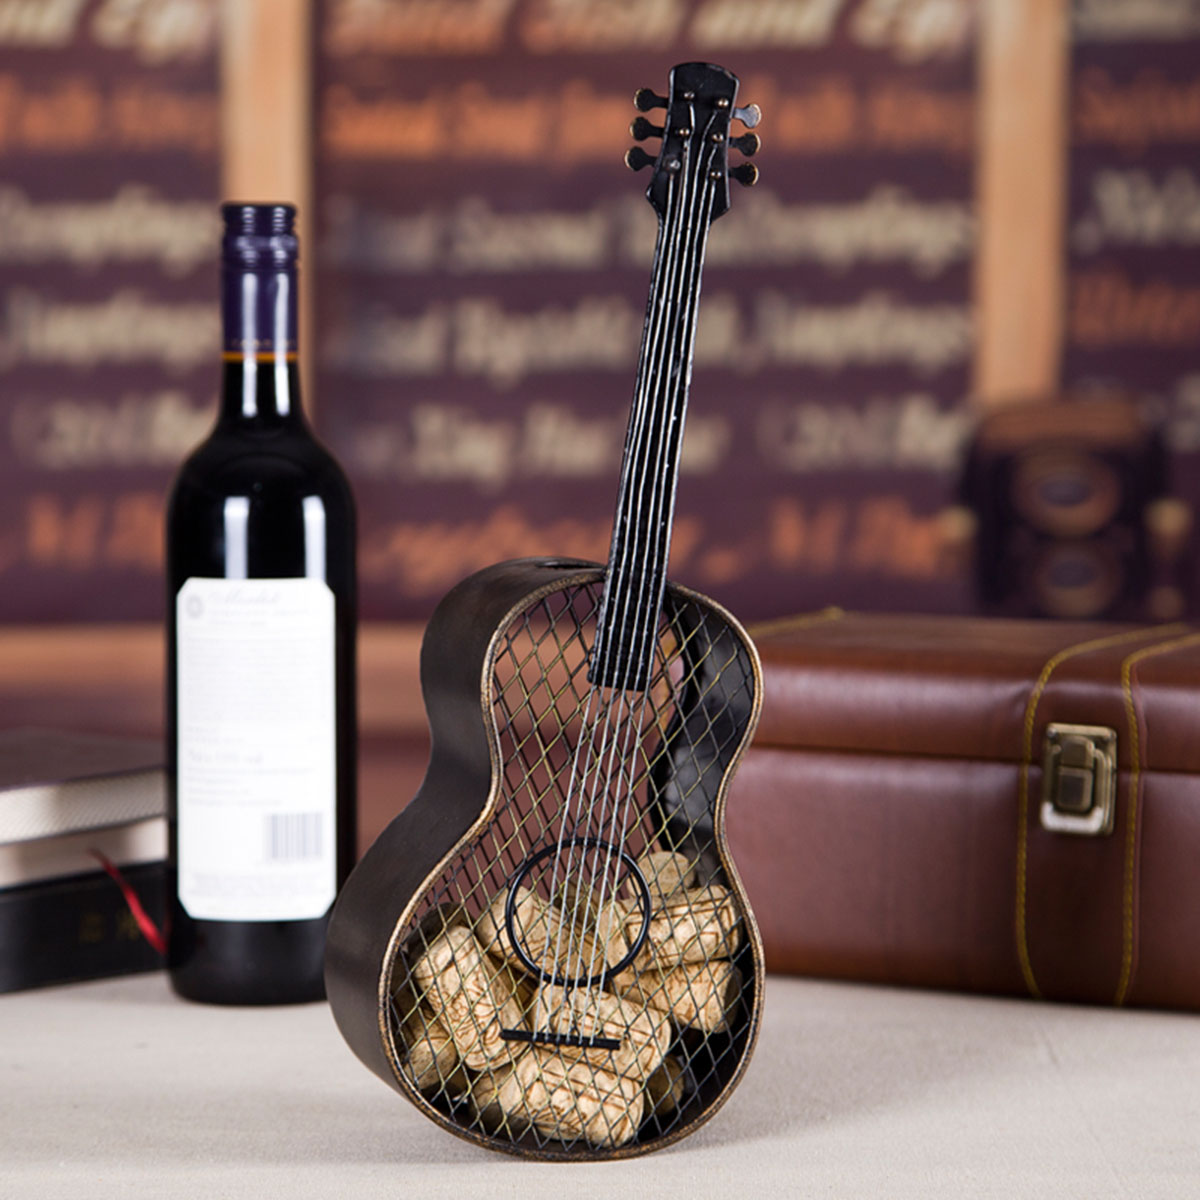 bd company a_034 Tooarts Guitar Wine Cork Container Practical Sculp Home Decor